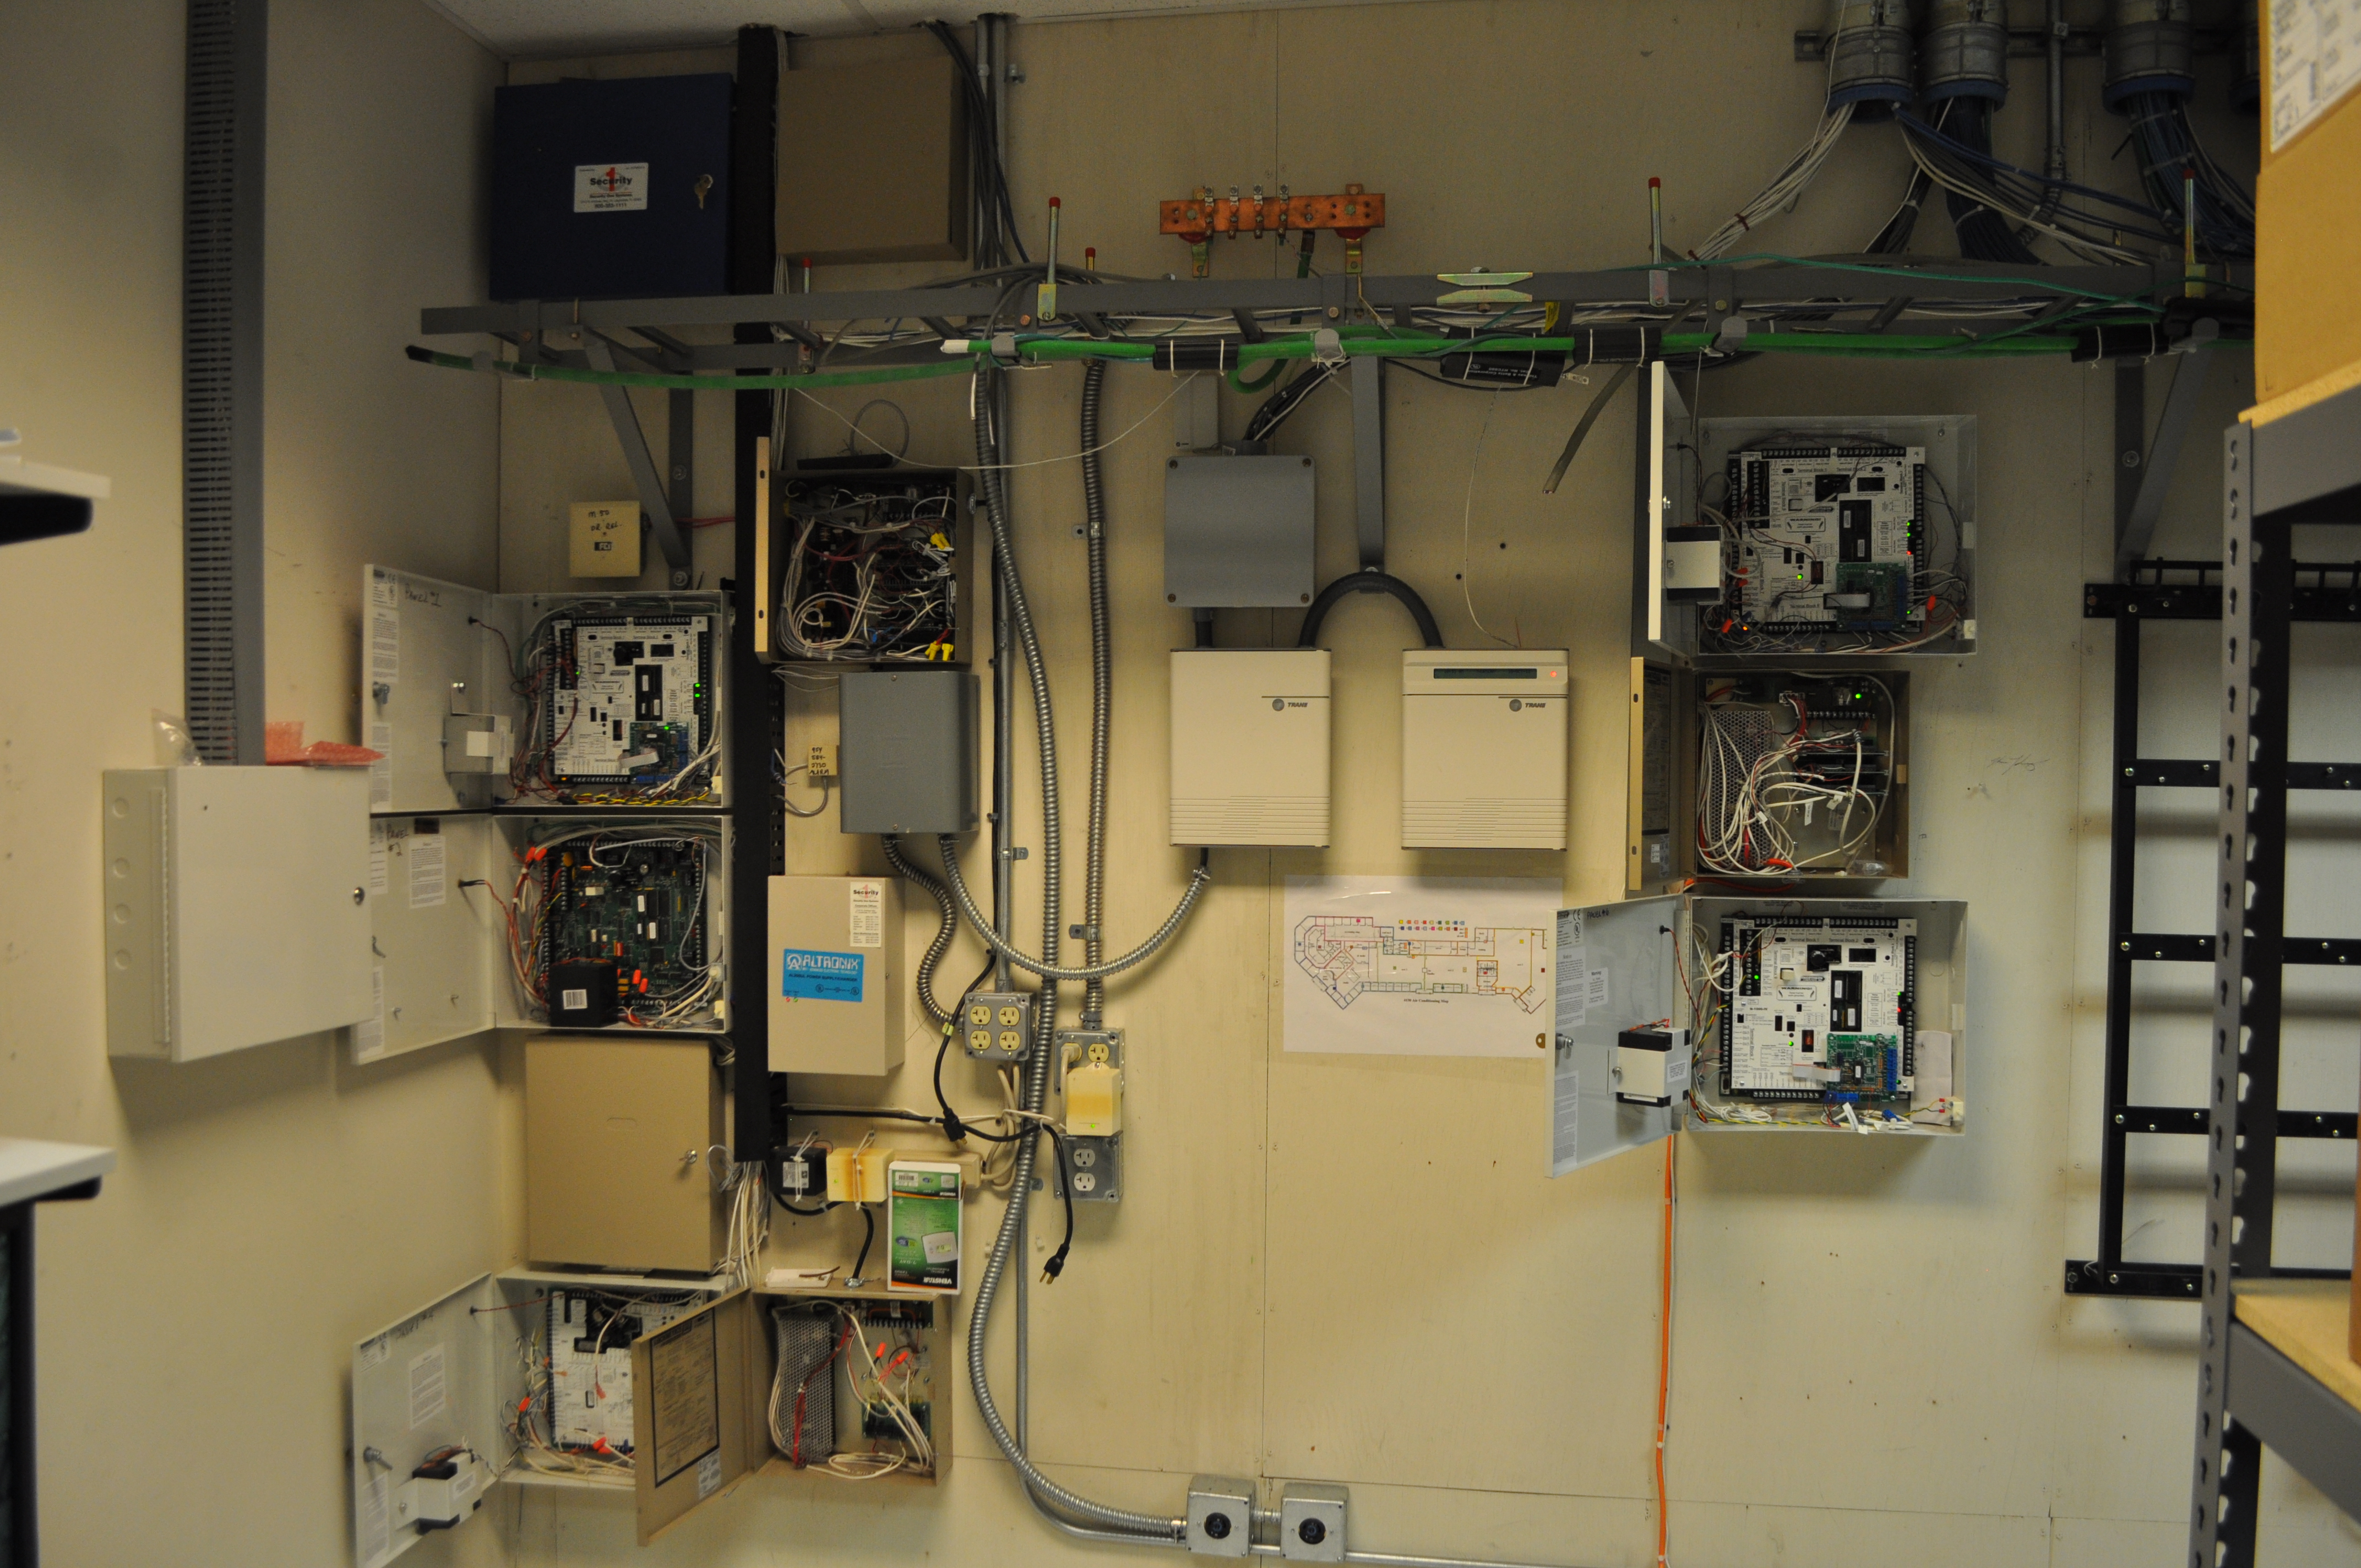 Existing System - Prior to Dash Work